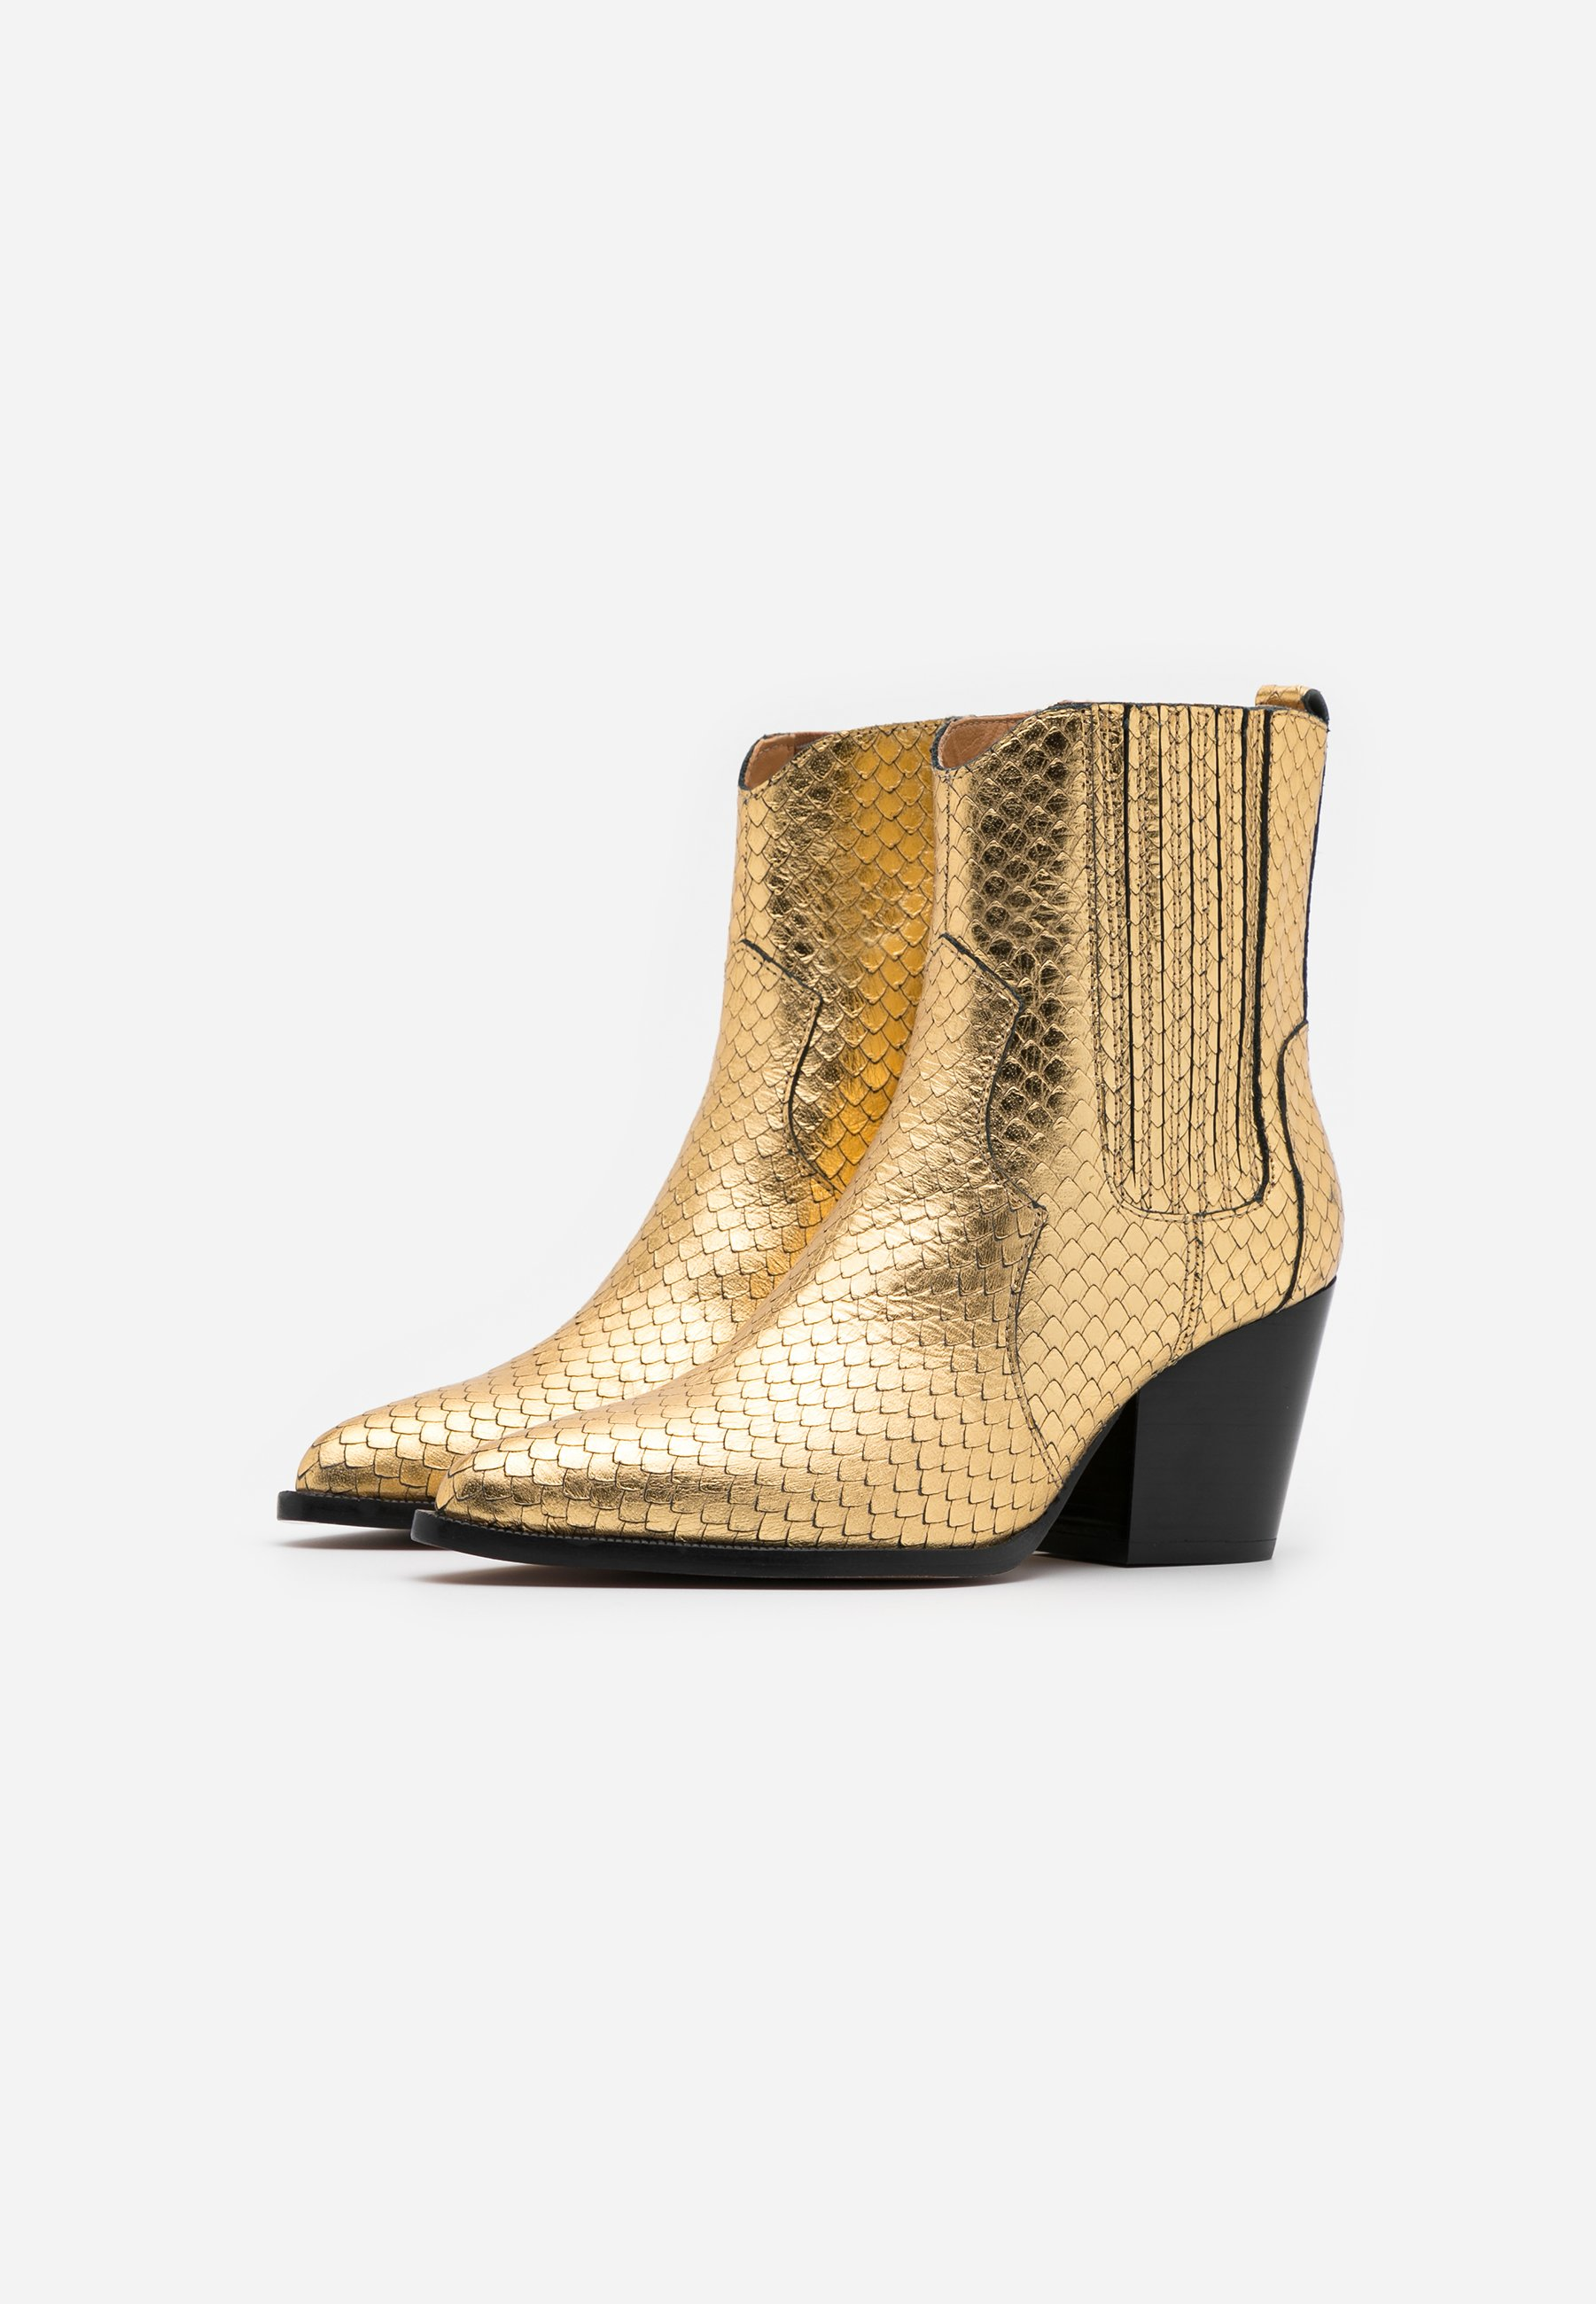 2013 Cheapest Toral Cowboy/biker ankle boot - roy vacuno gold | women's shoes 2020 N336d